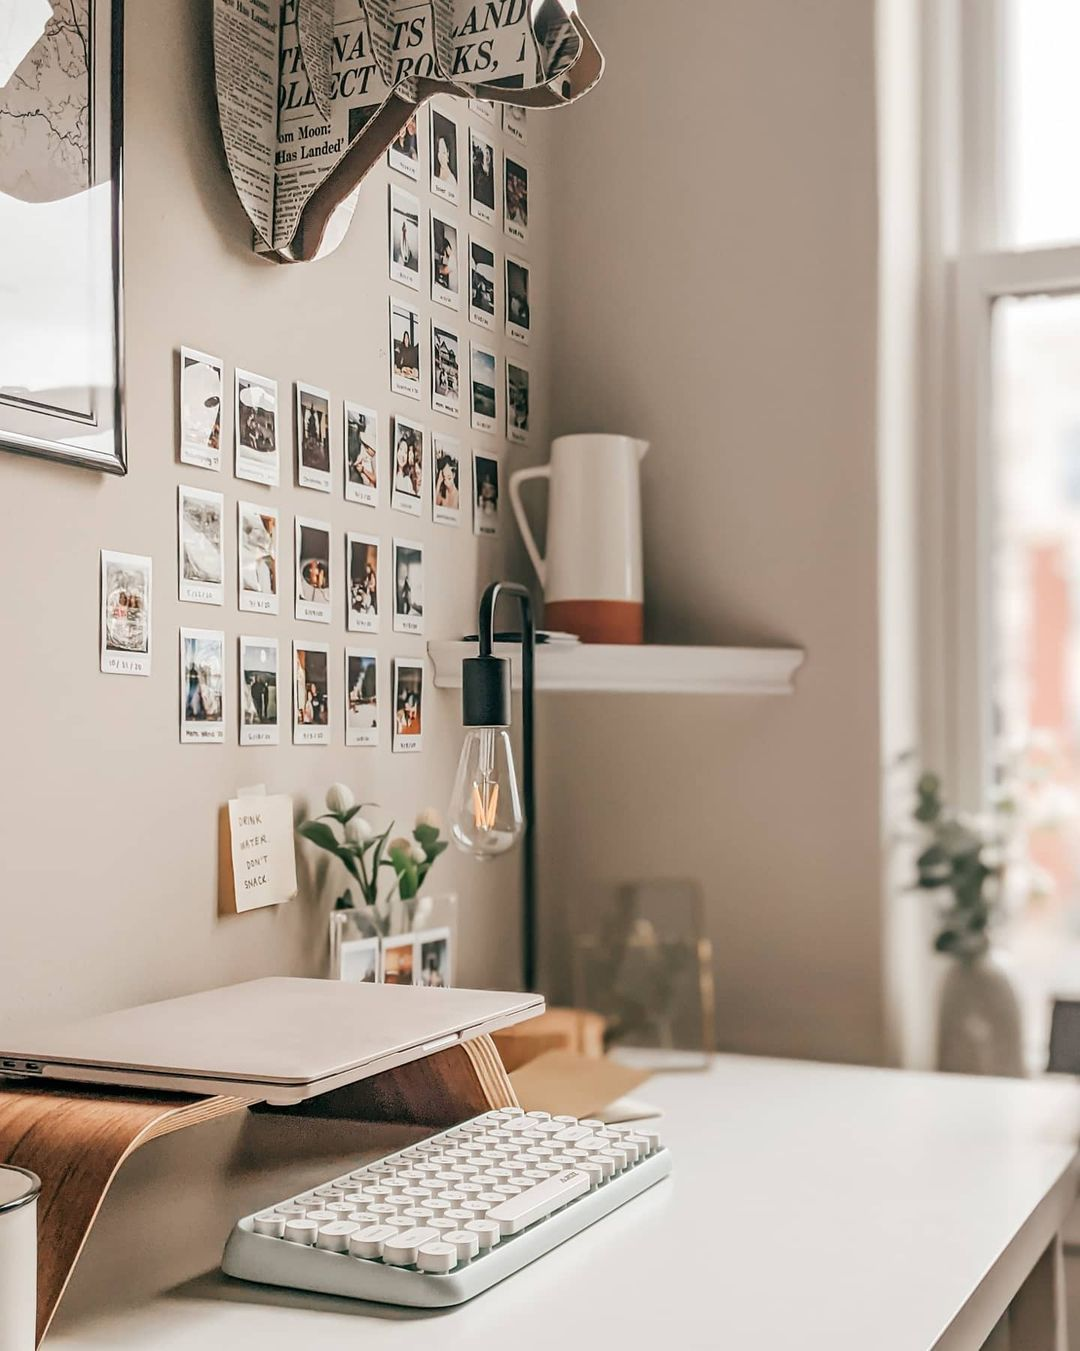 30+ Aesthetic Desk Ideas for Your Workspace